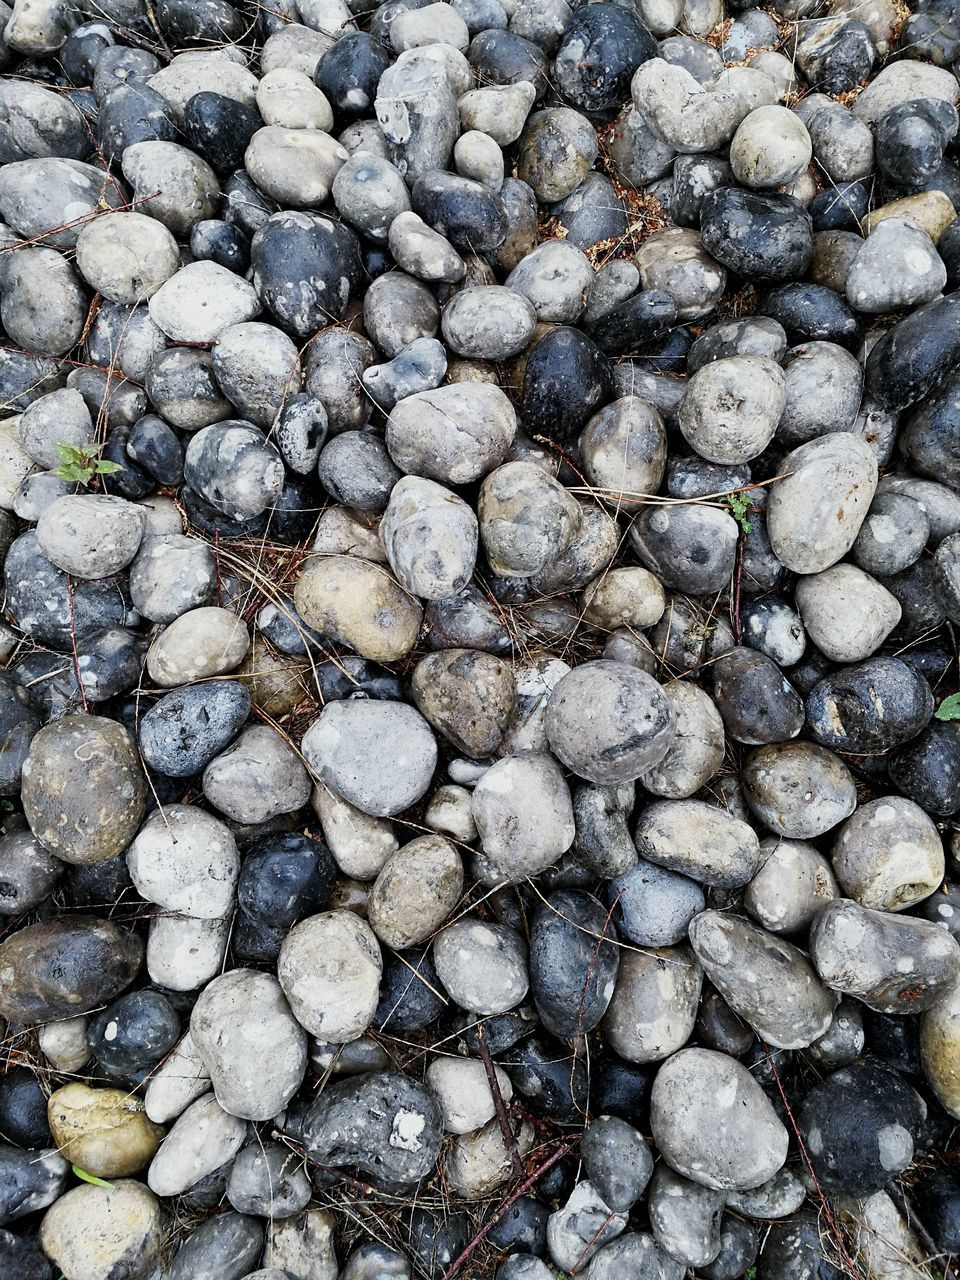 full frame, abundance, large group of objects, pebble, nature, no people, shore, pebble beach, backgrounds, beach, outdoors, day, close-up